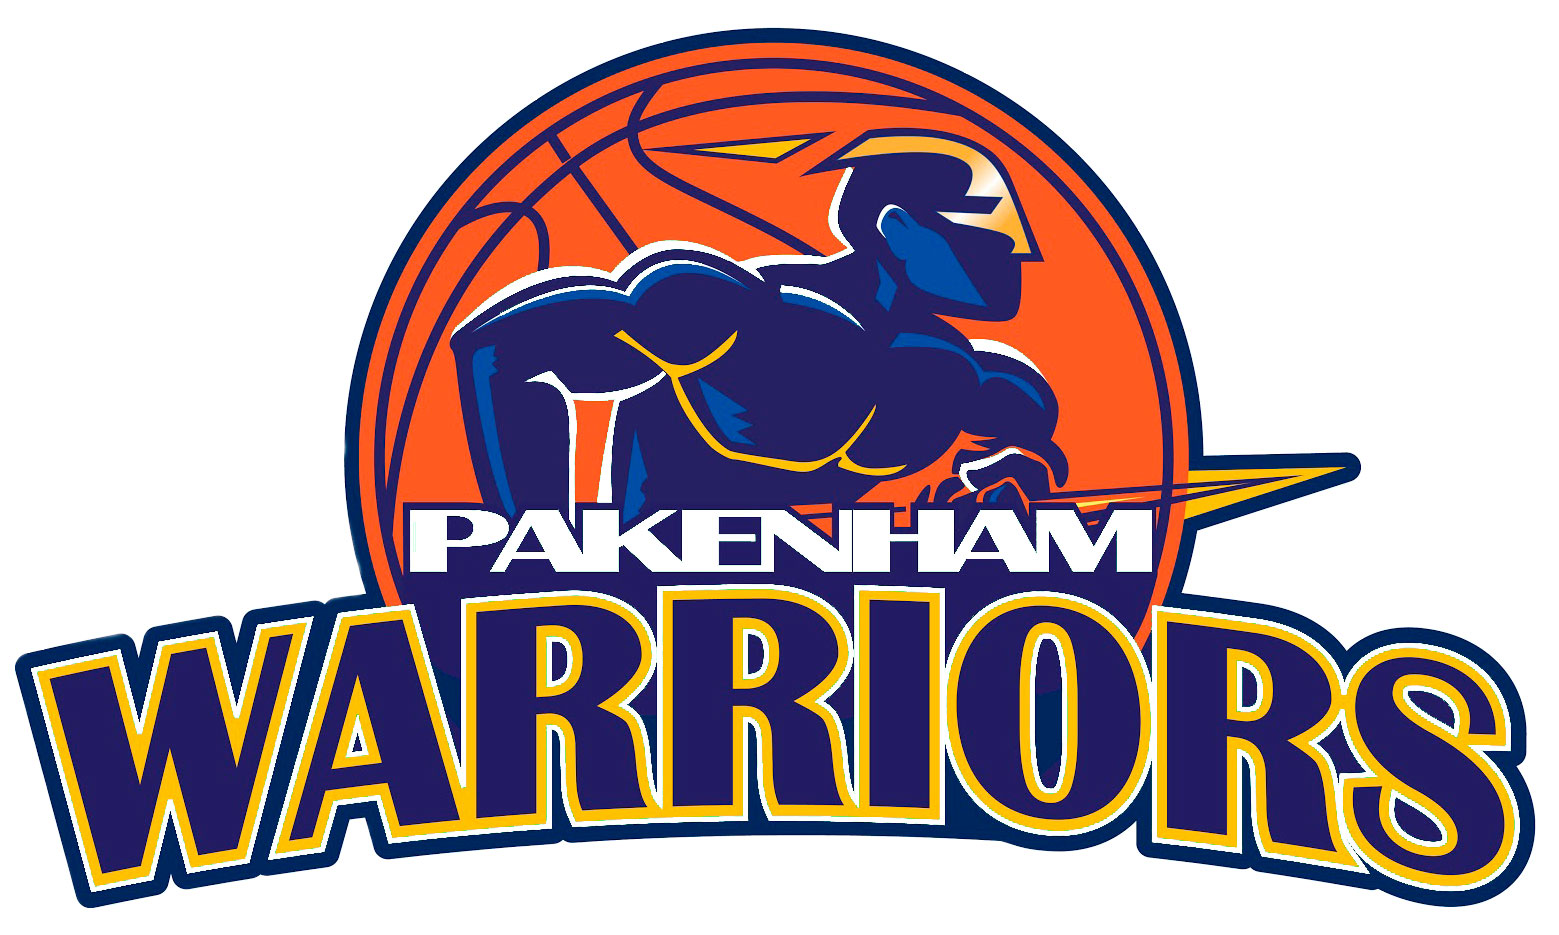 Pakenham Warriors - Pakenham Warriors